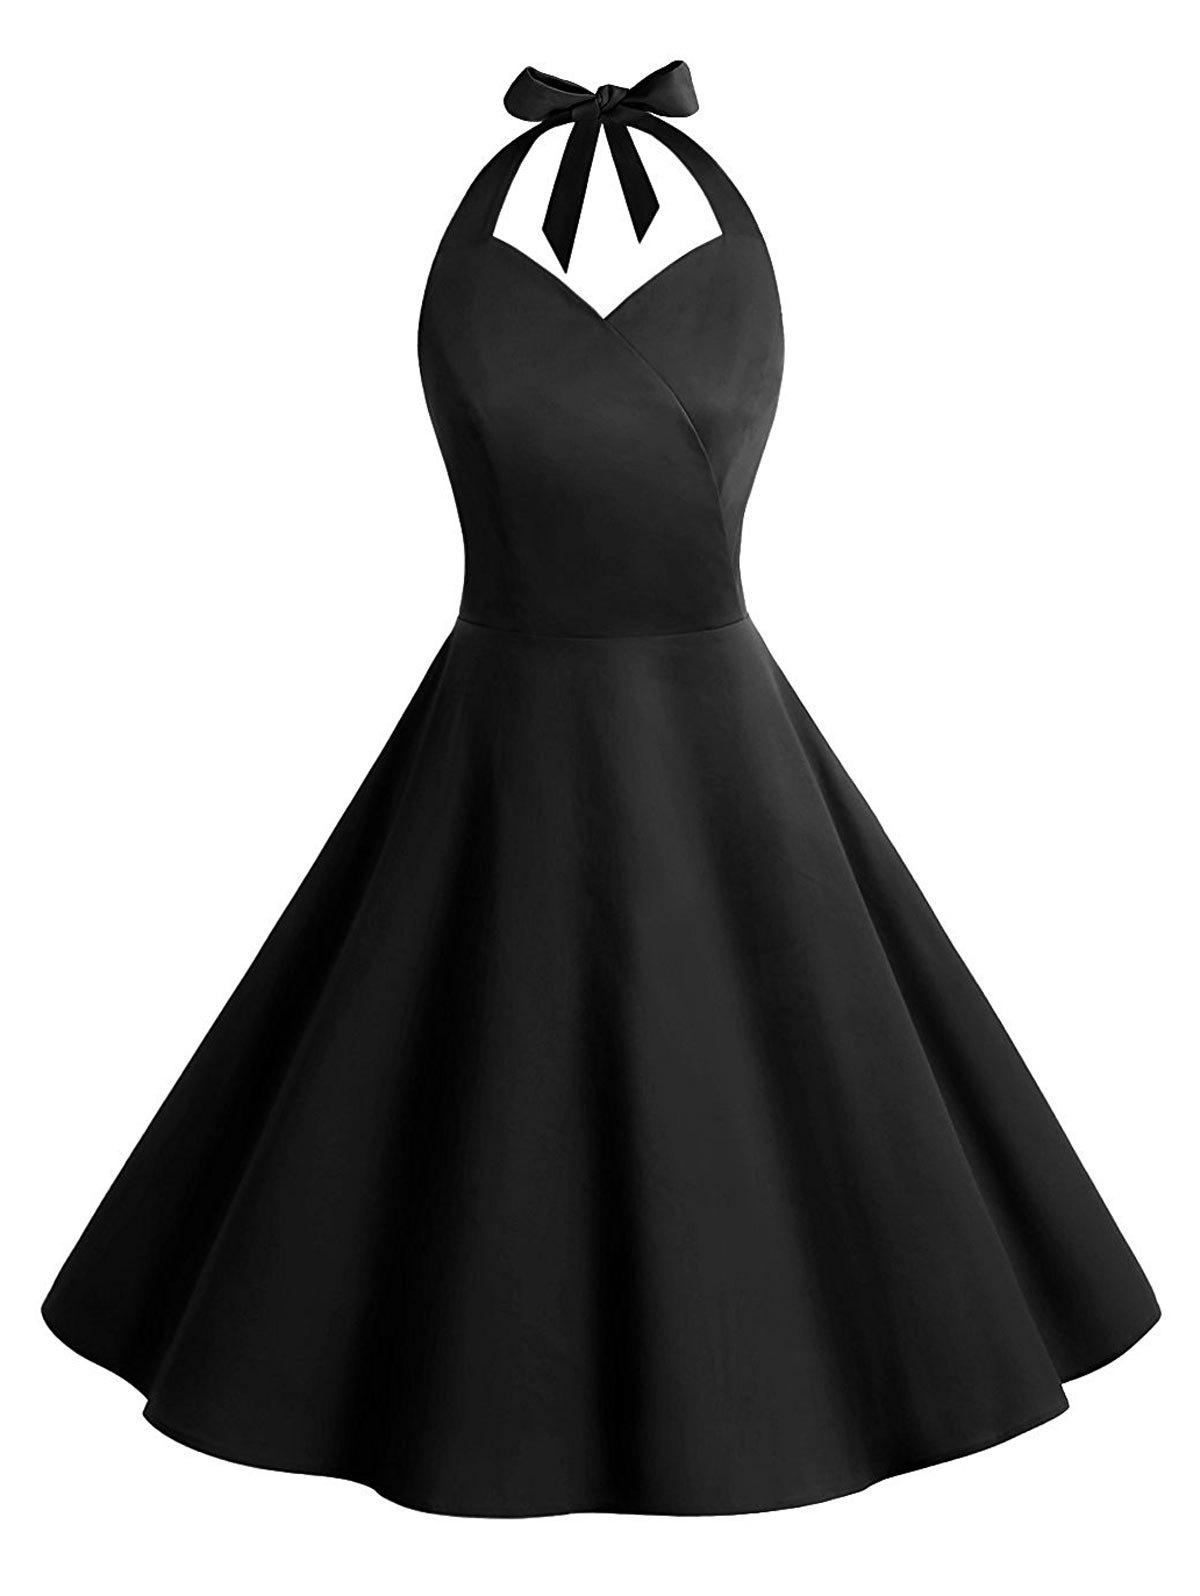 Vintage Halter Backless Party Skater Dress - Noir 2XL